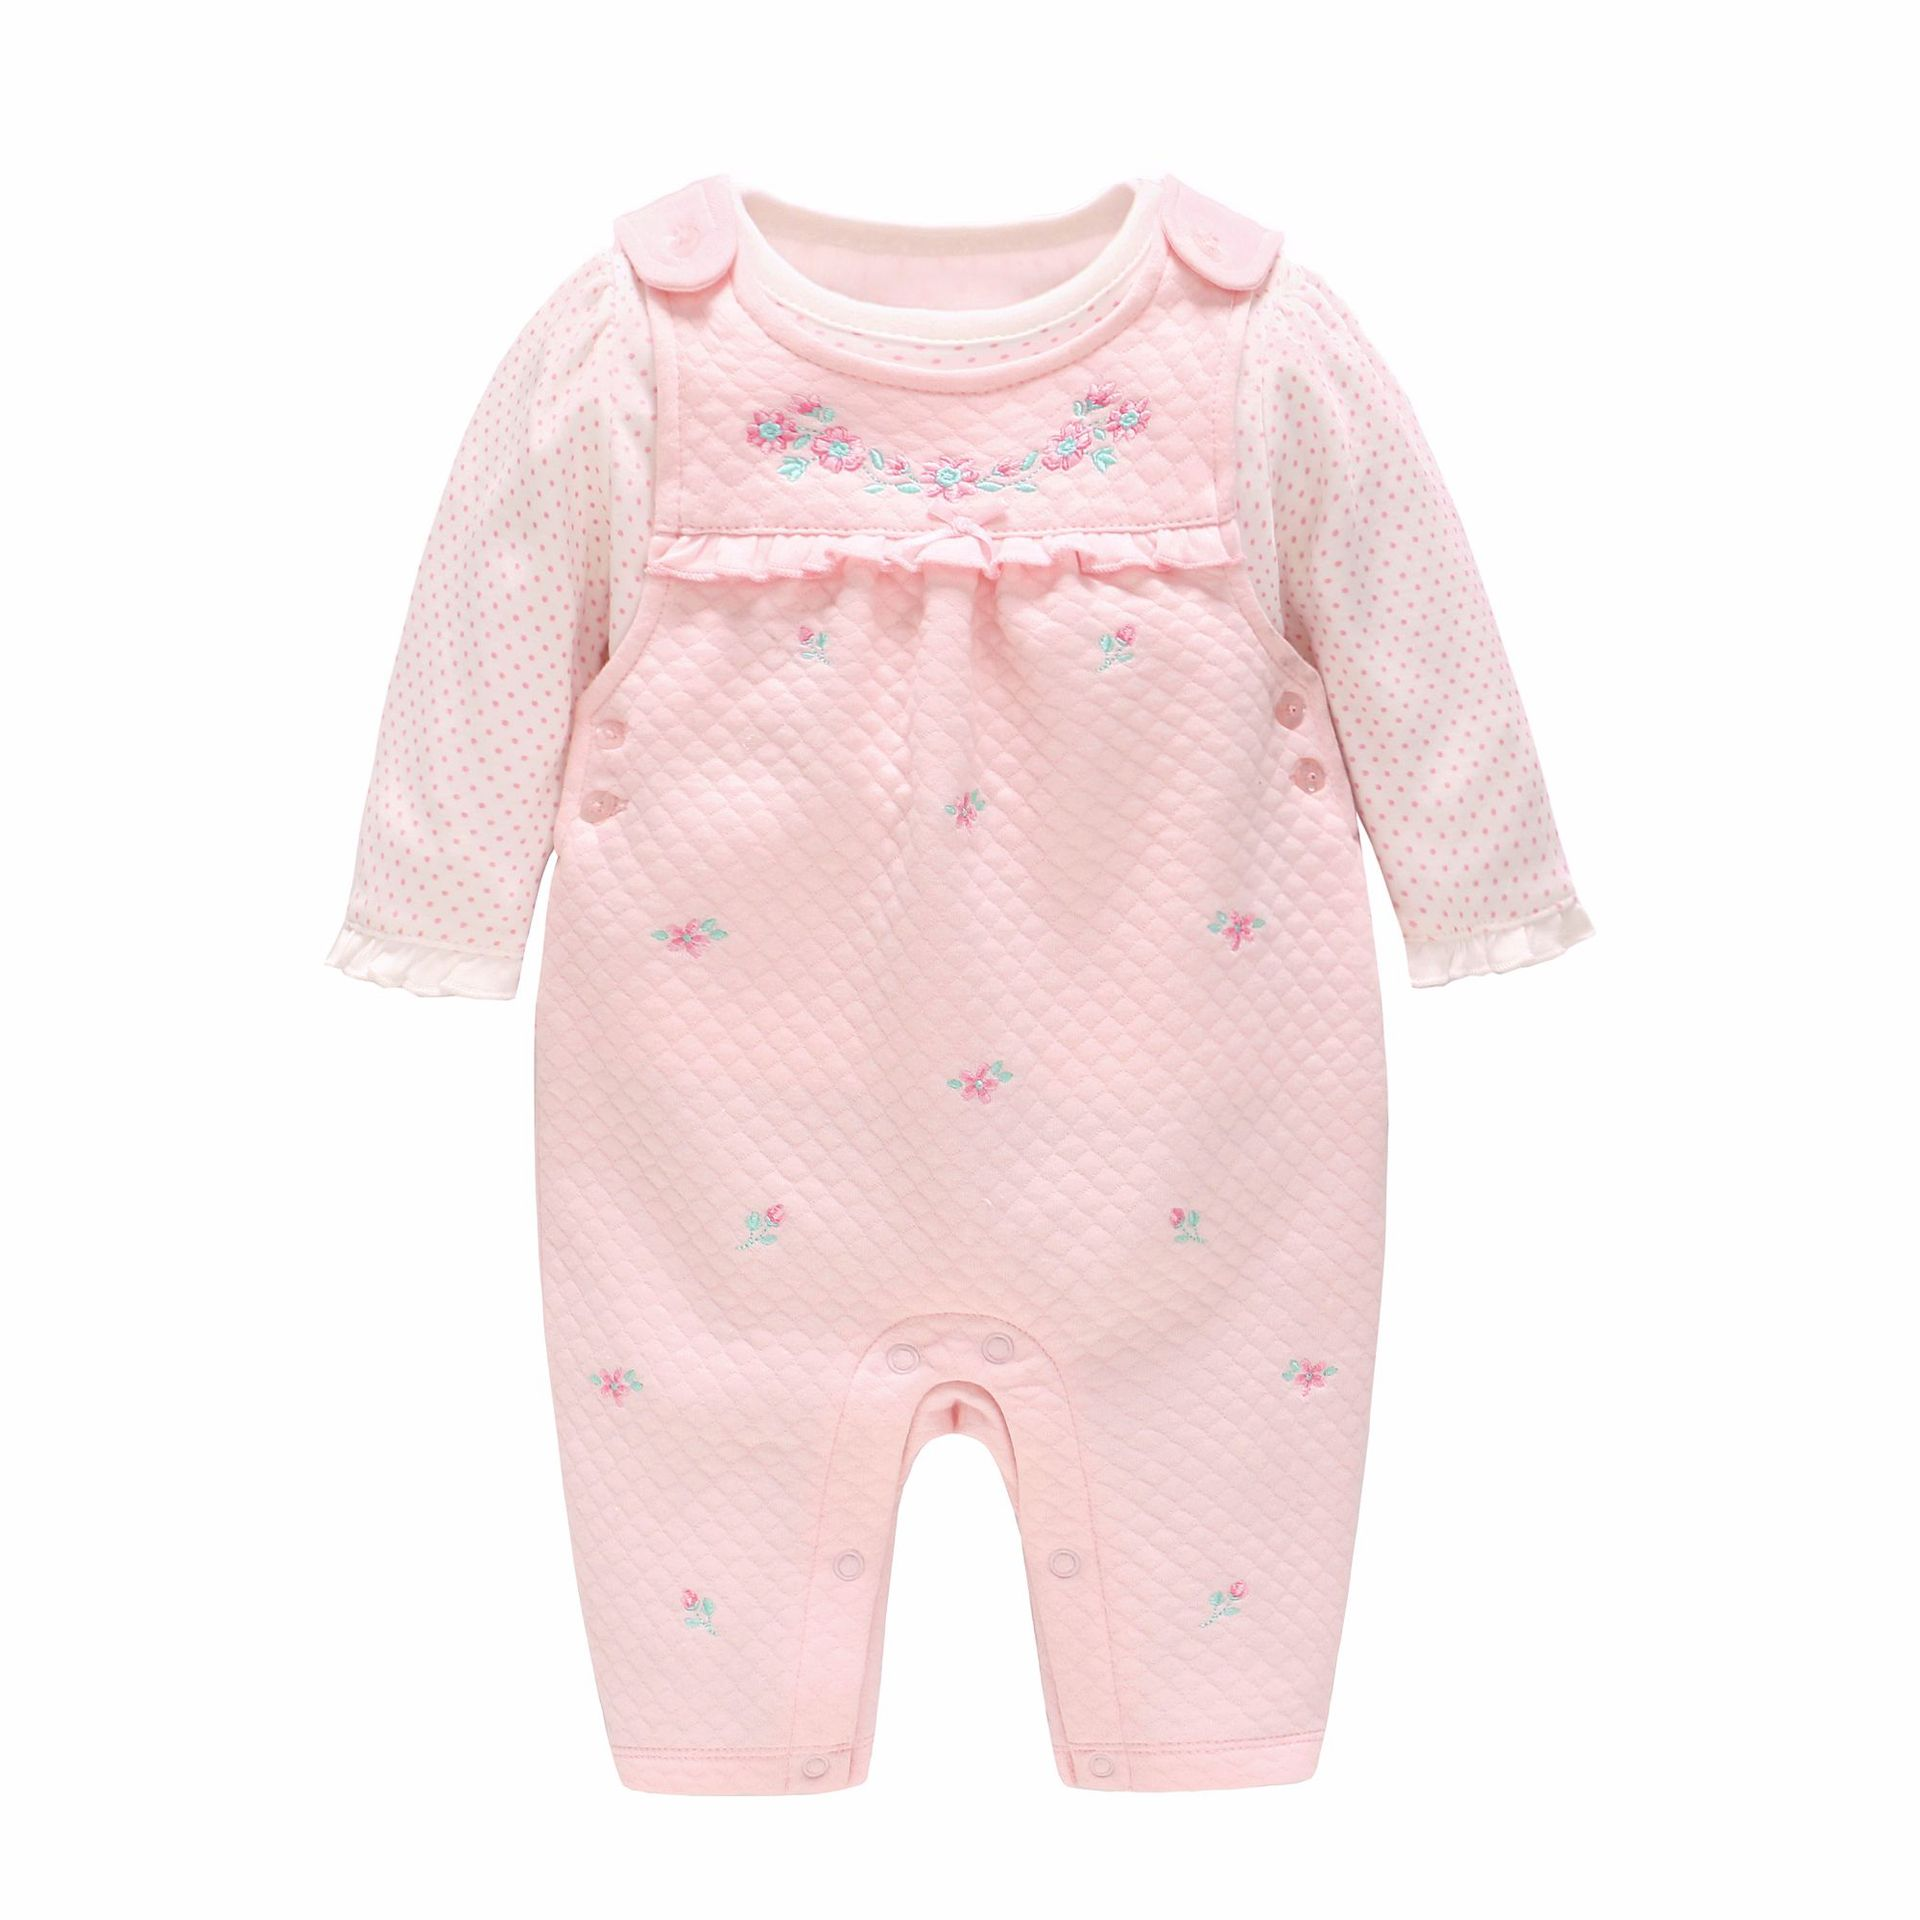 2019 New Born Baby Girl Clothes Pure Cotton Spring and Autumn New Baby Jumpsuit Pink Embroidery Strap Pants Children's Set